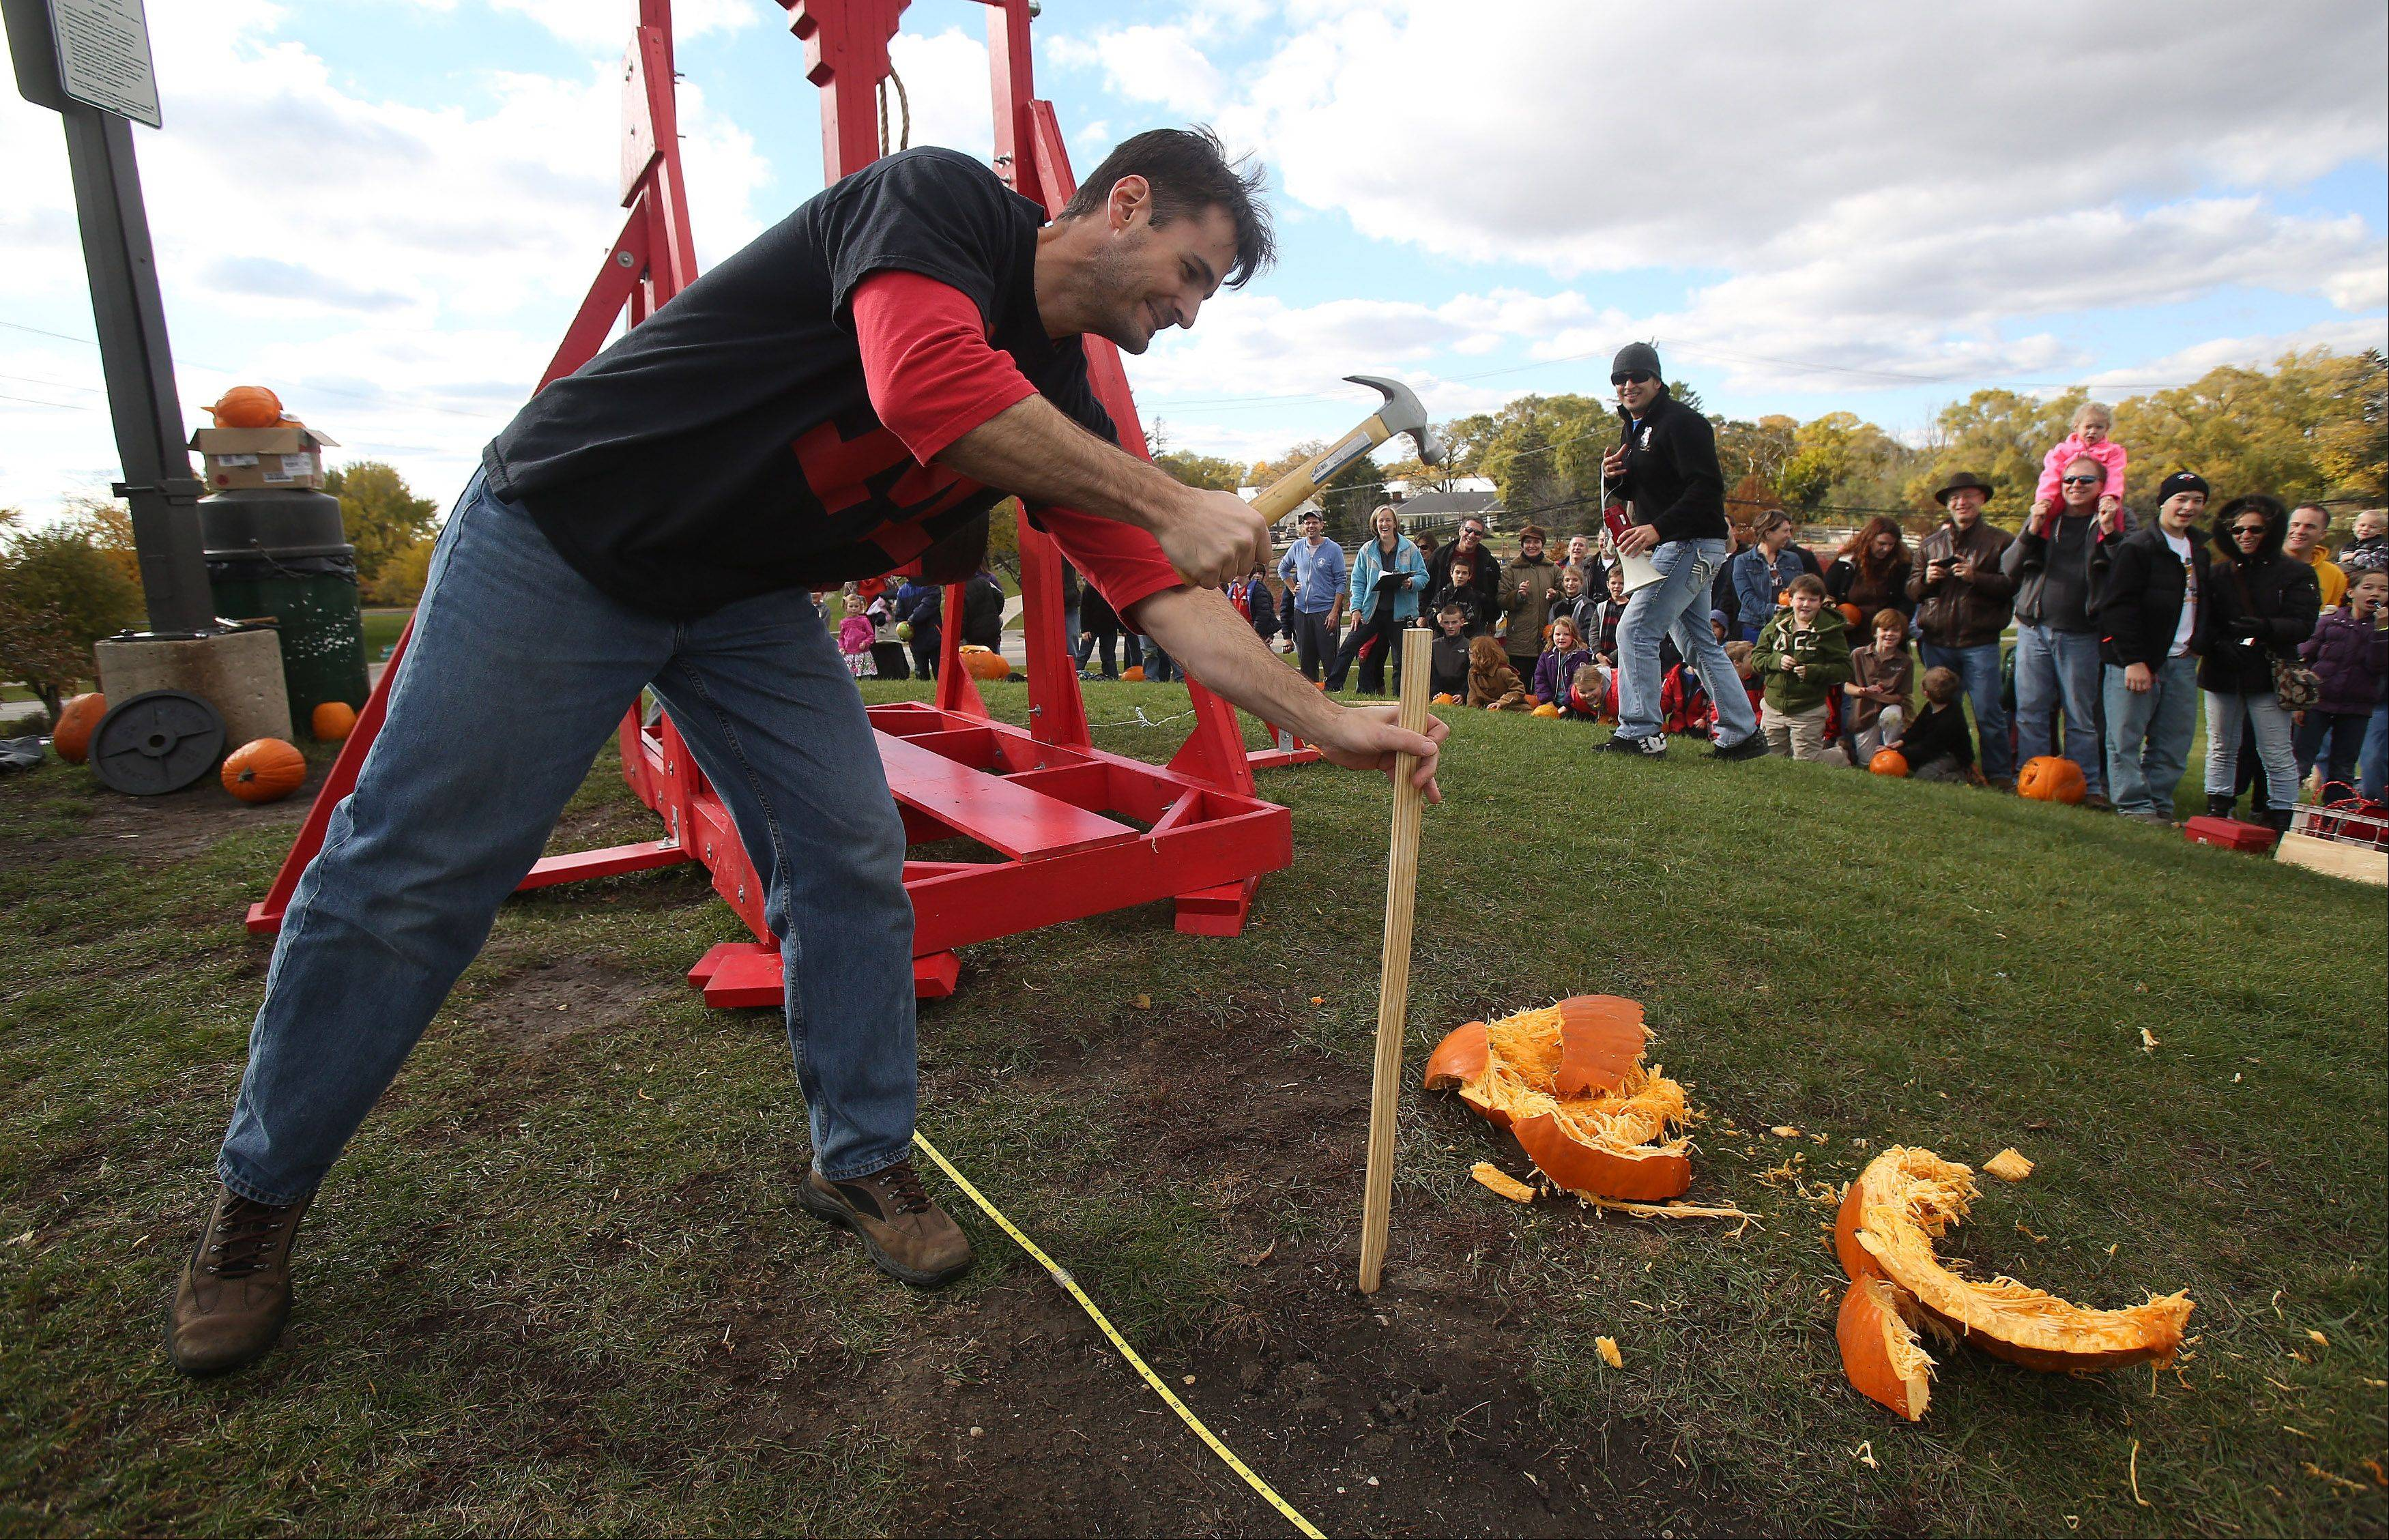 Mundelein High School physics teacher Mike Hickey marks the landing of the first pumpkin a couple of feet from the catapult after it went straight up after launch Sunday during Mundelein�s 6th annual Pumpkin Drop Sunday at Keith Mione Community Park. Families brought their Halloween pumpkins to the event where they were bashed, rolled and flung with a catapult.